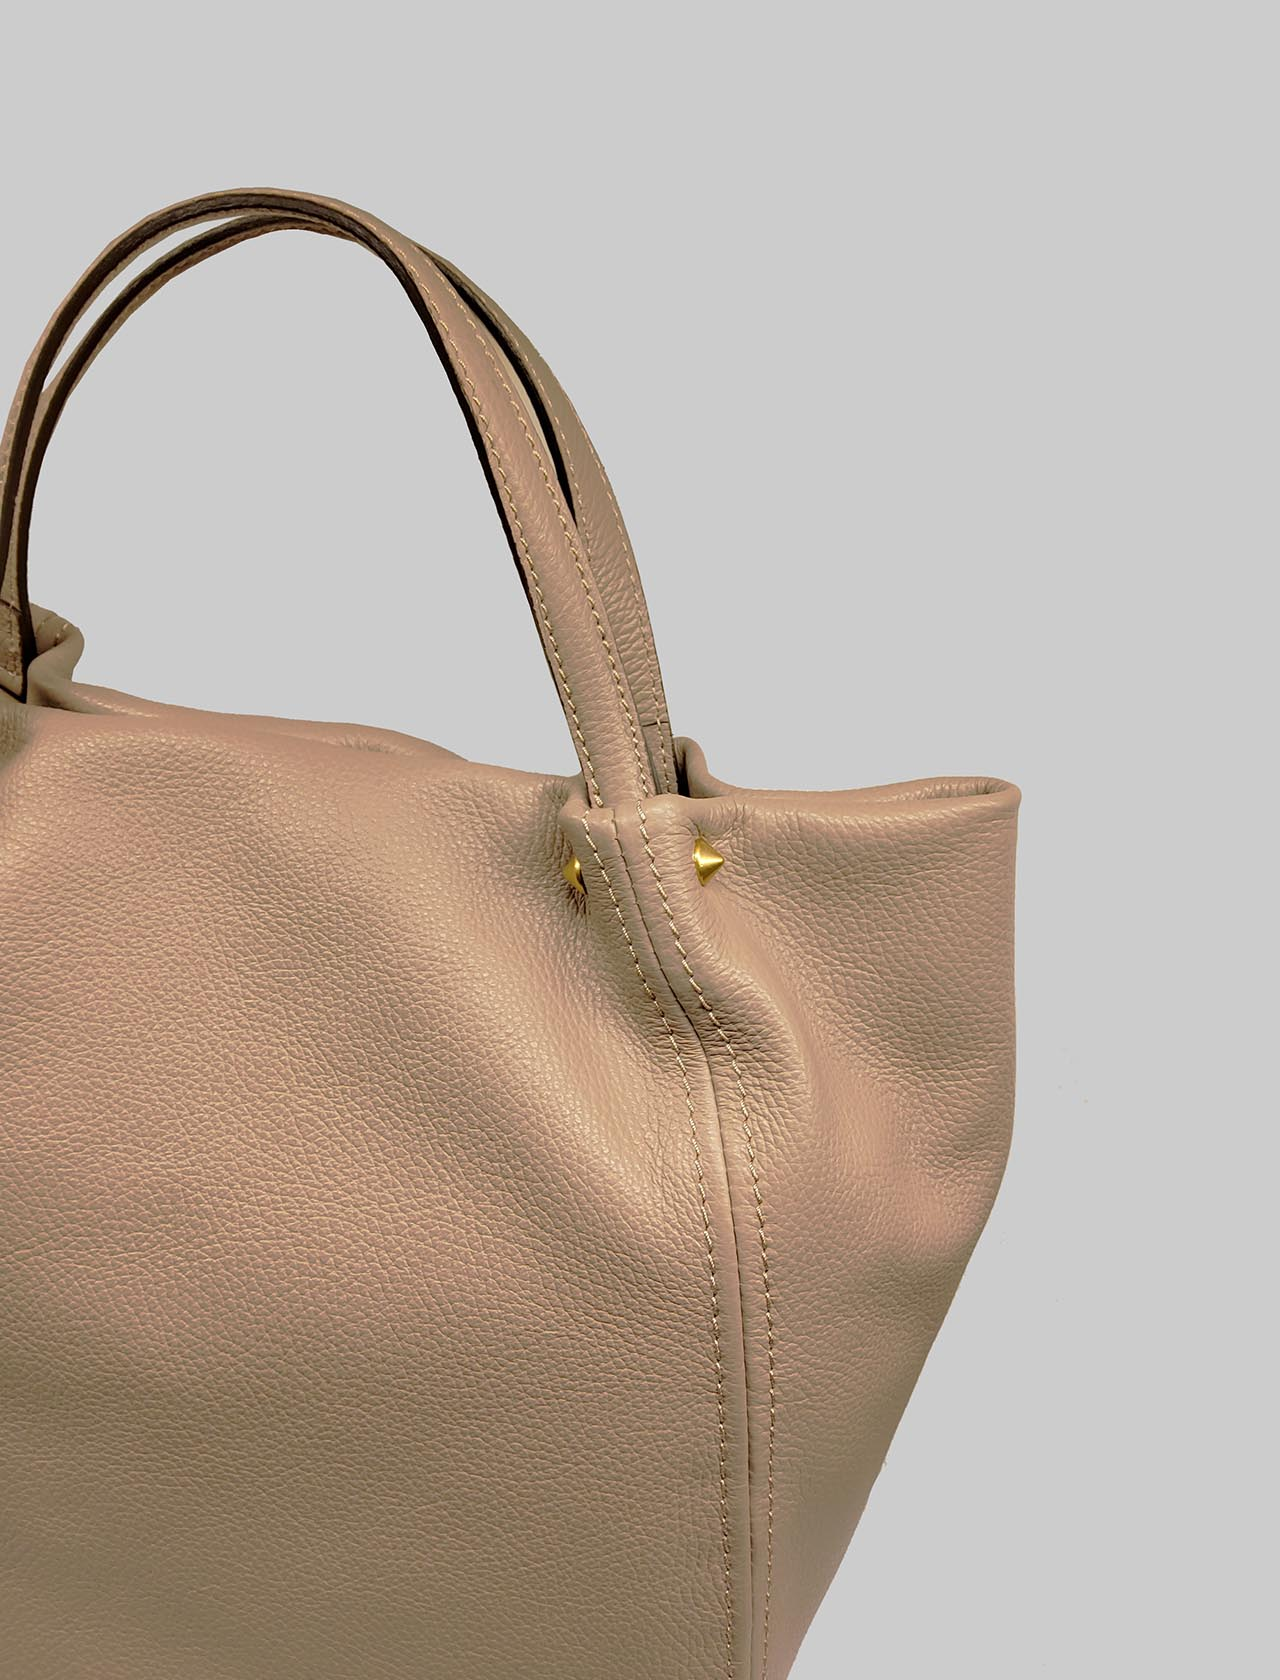 Toulip Woman Shoulder Bag In Beige Leather With Double Handle And Removable And Adjustable Shoulder Strap Gianni Chiarini | Bags and backpacks | BS846511706